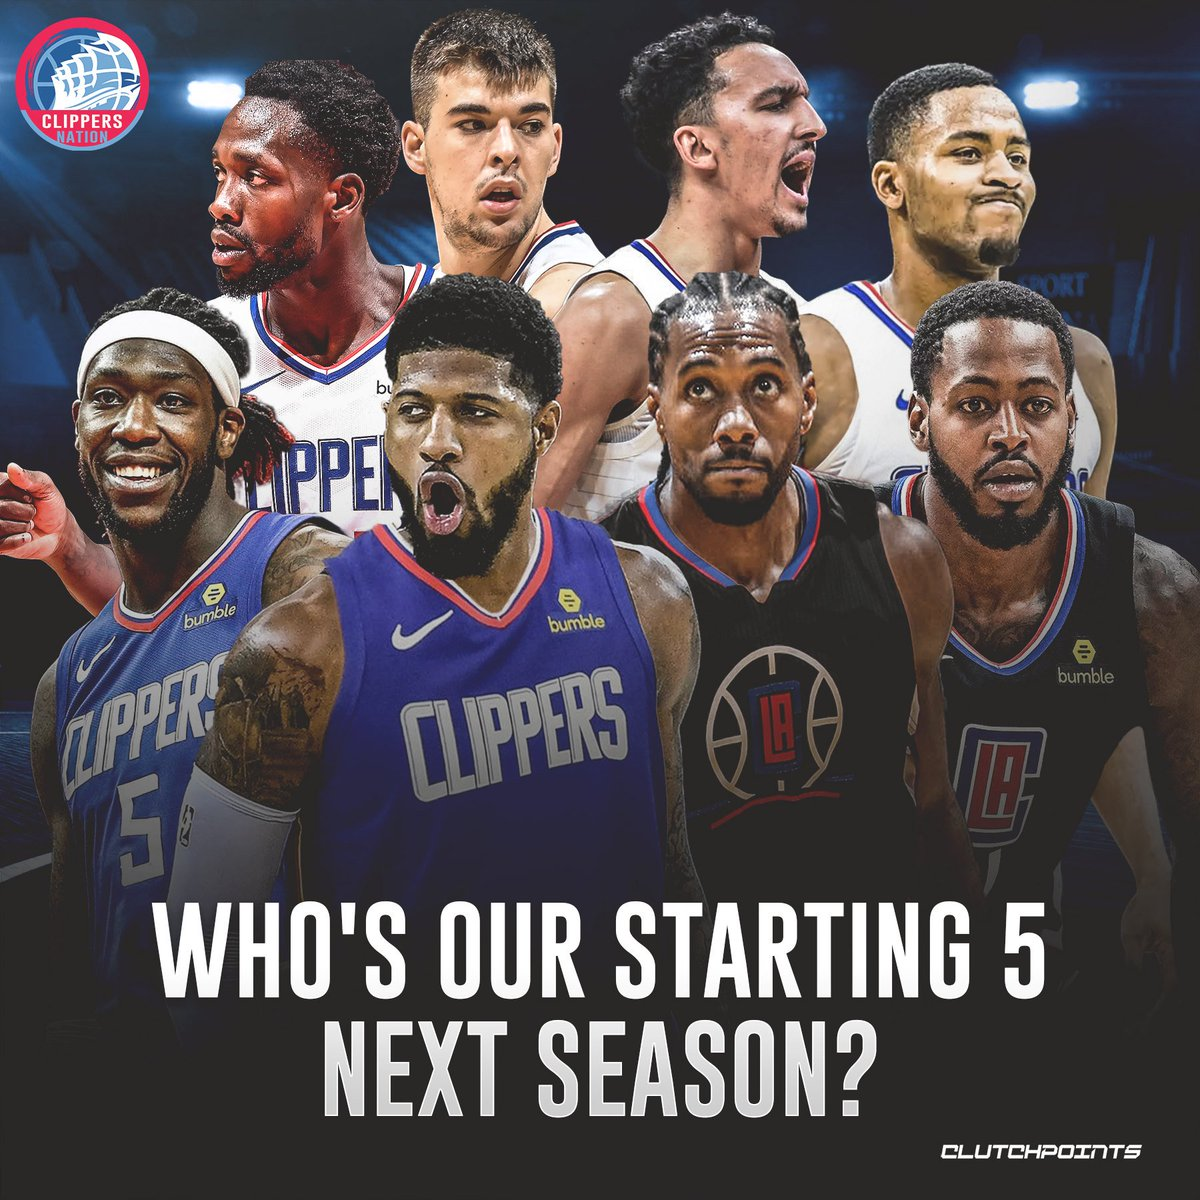 What lineup should the #Clippers put on the floor next to Kawhi Leonard and Paul George next season? #Clippernation